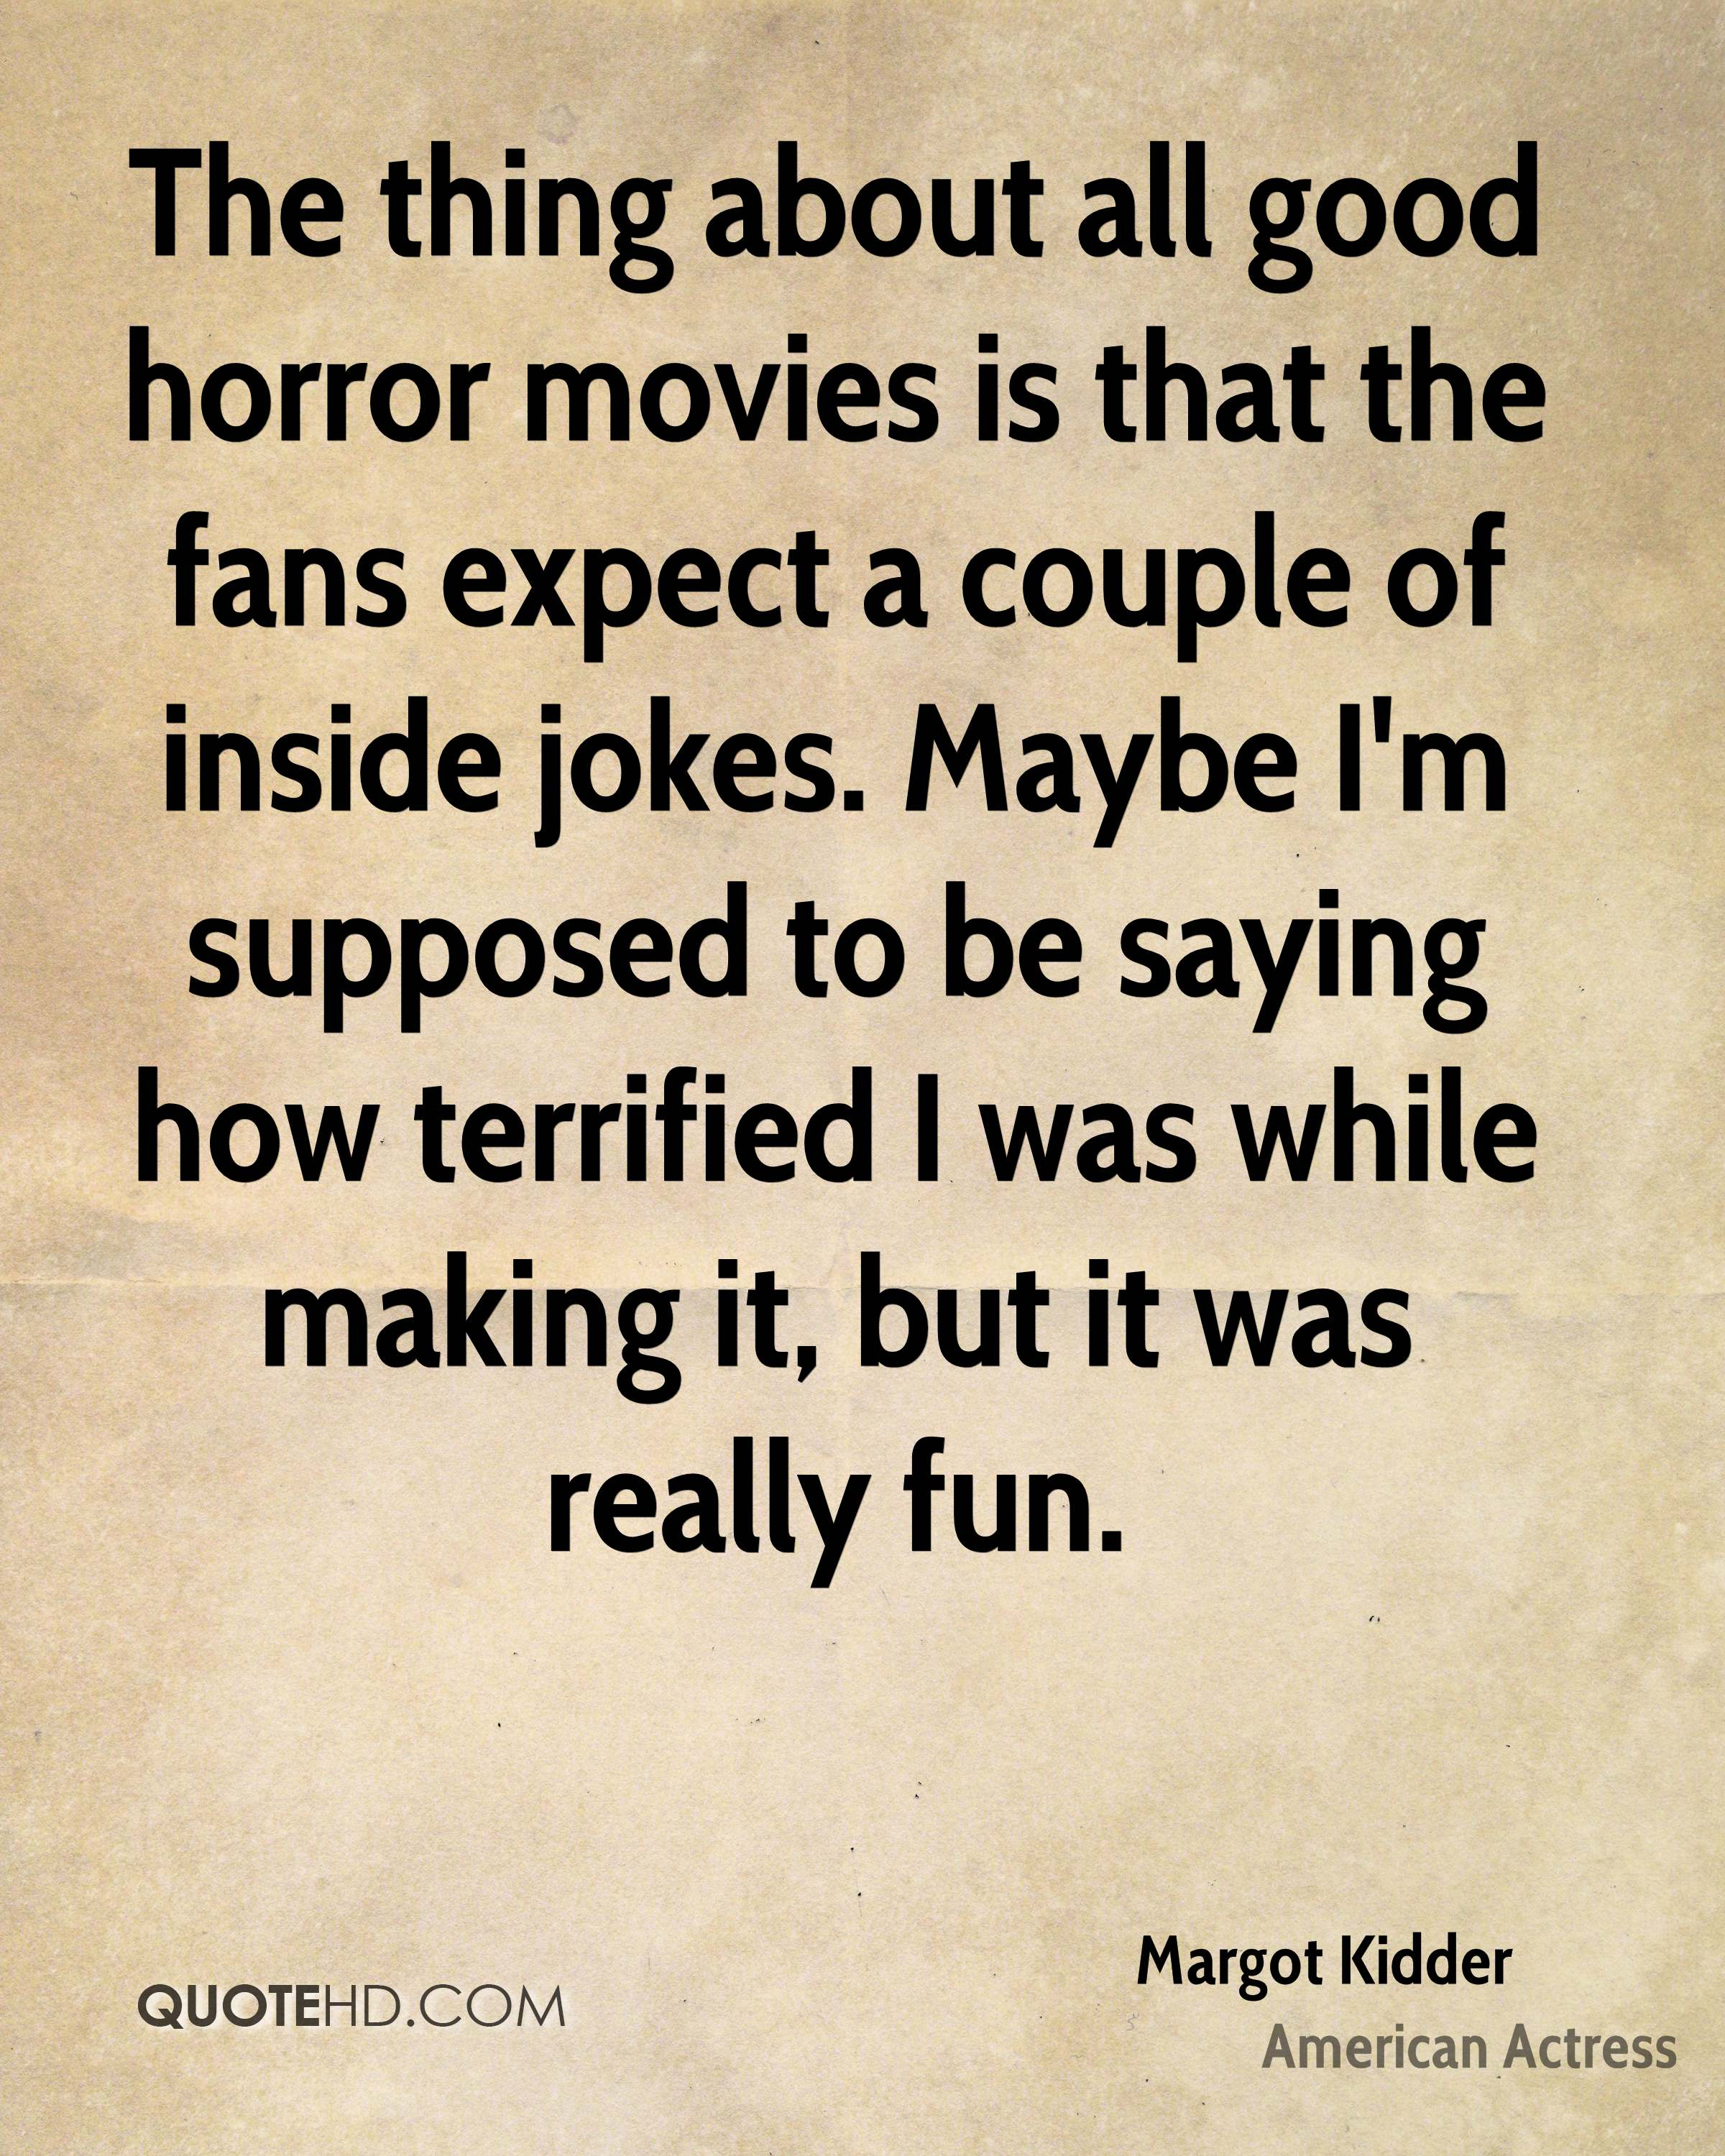 The thing about all good horror movies is that the fans expect a couple of inside jokes. Maybe I'm supposed to be saying how terrified I was while making it, but it was really fun.